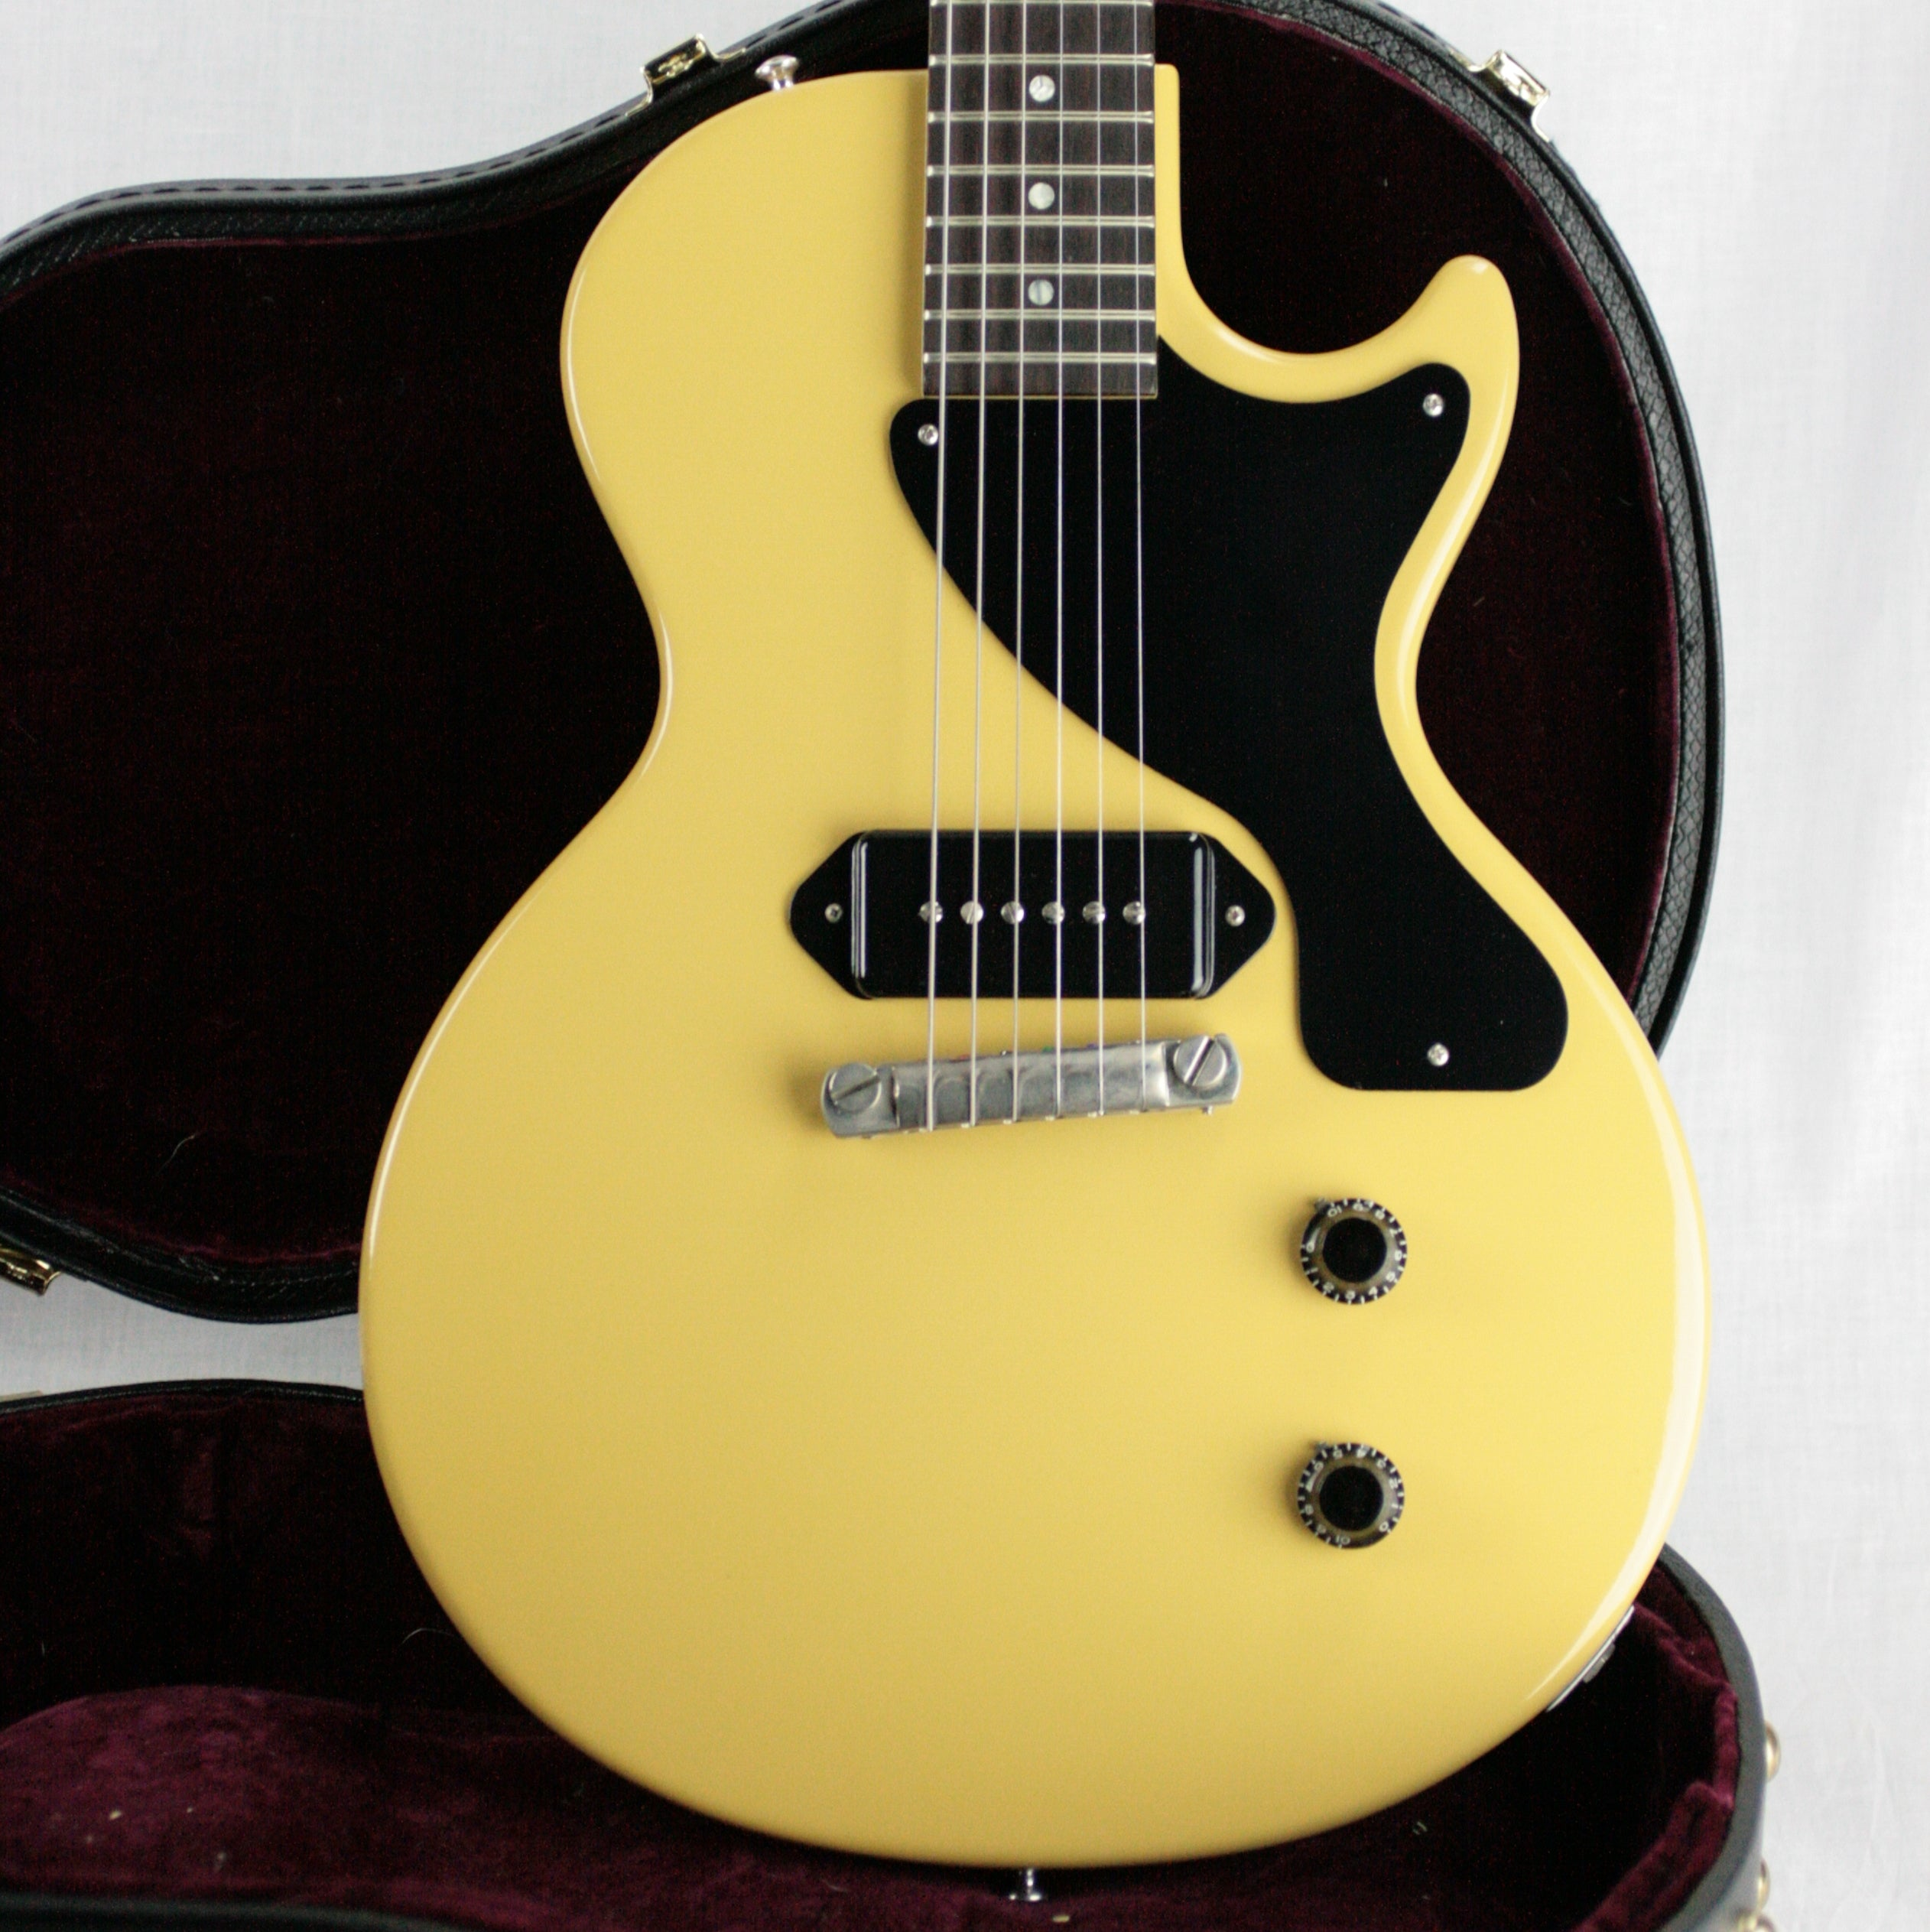 MINTY 2010 Gibson 57 Les Paul Jr. TV YELLOW Reissue! 1957 Junior Custom Shop Historic